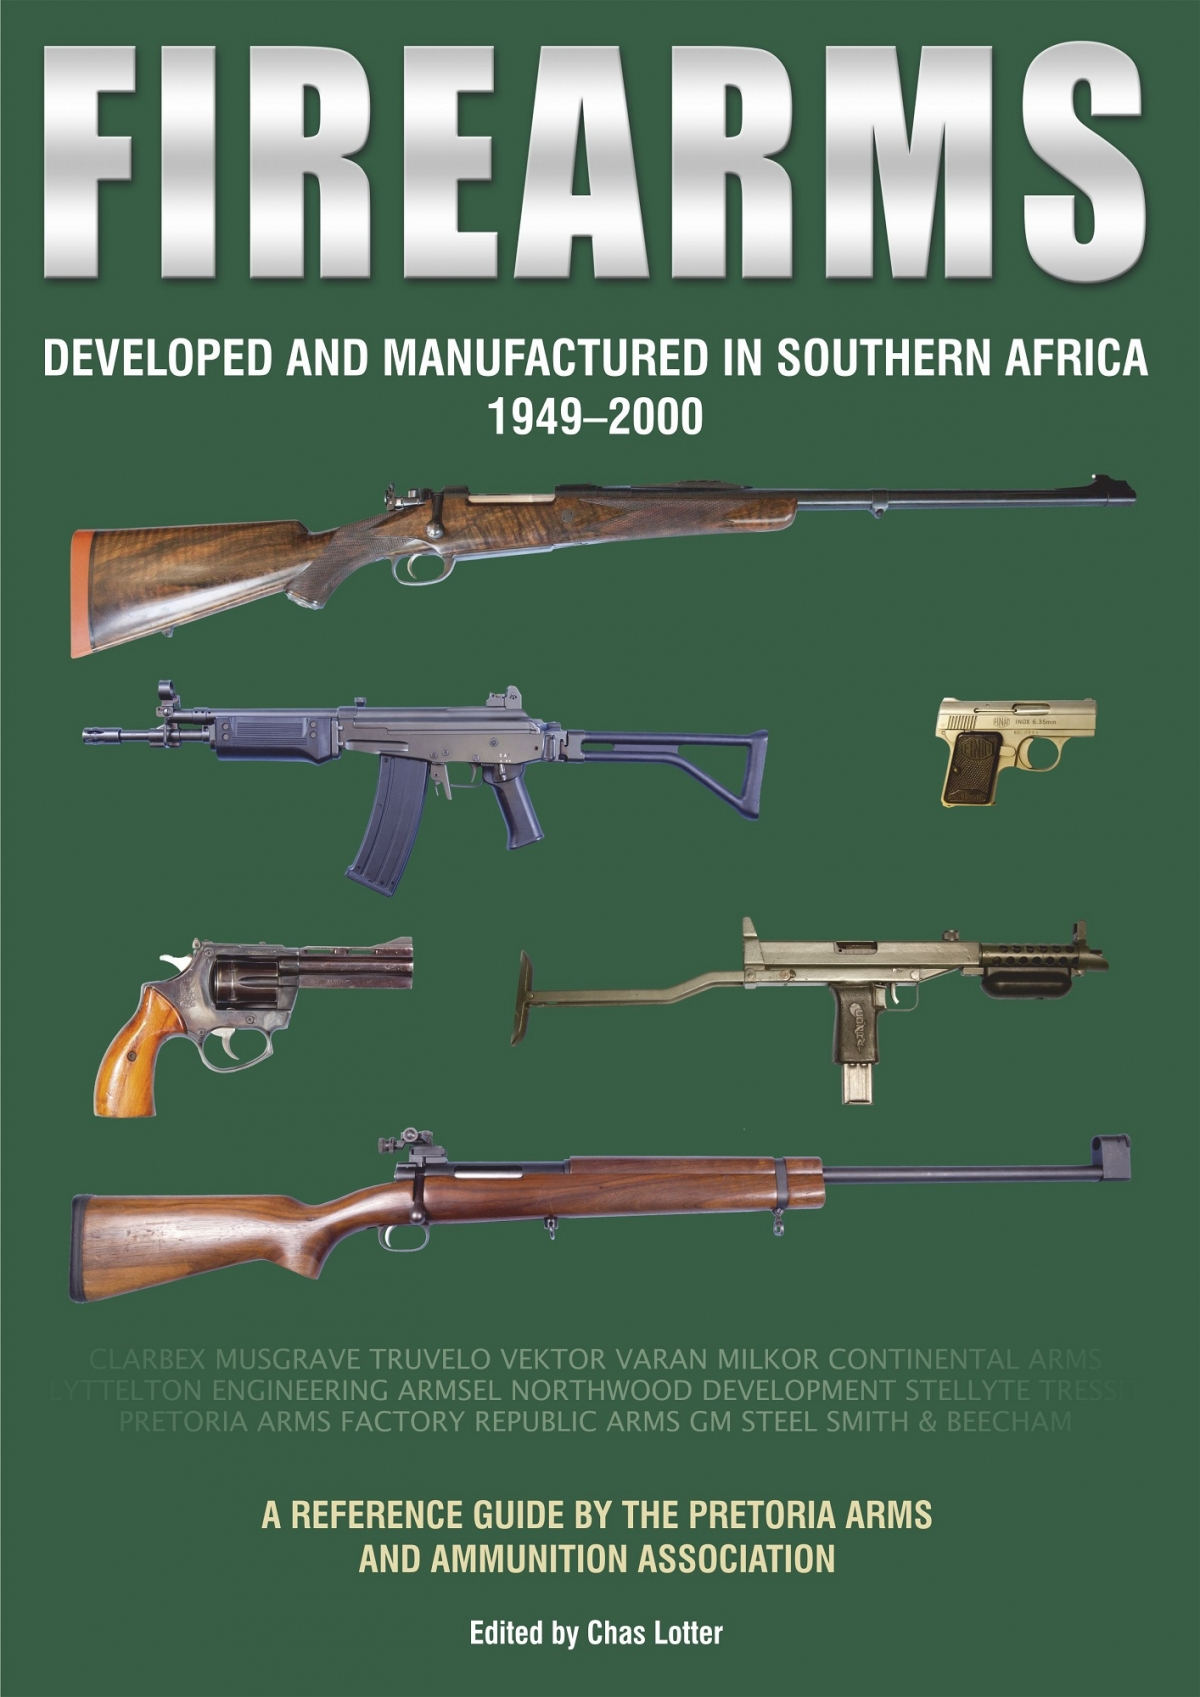 This book is definitely a must-have for the discerning gun enthusiast and expert, for gun collectors, and historians!